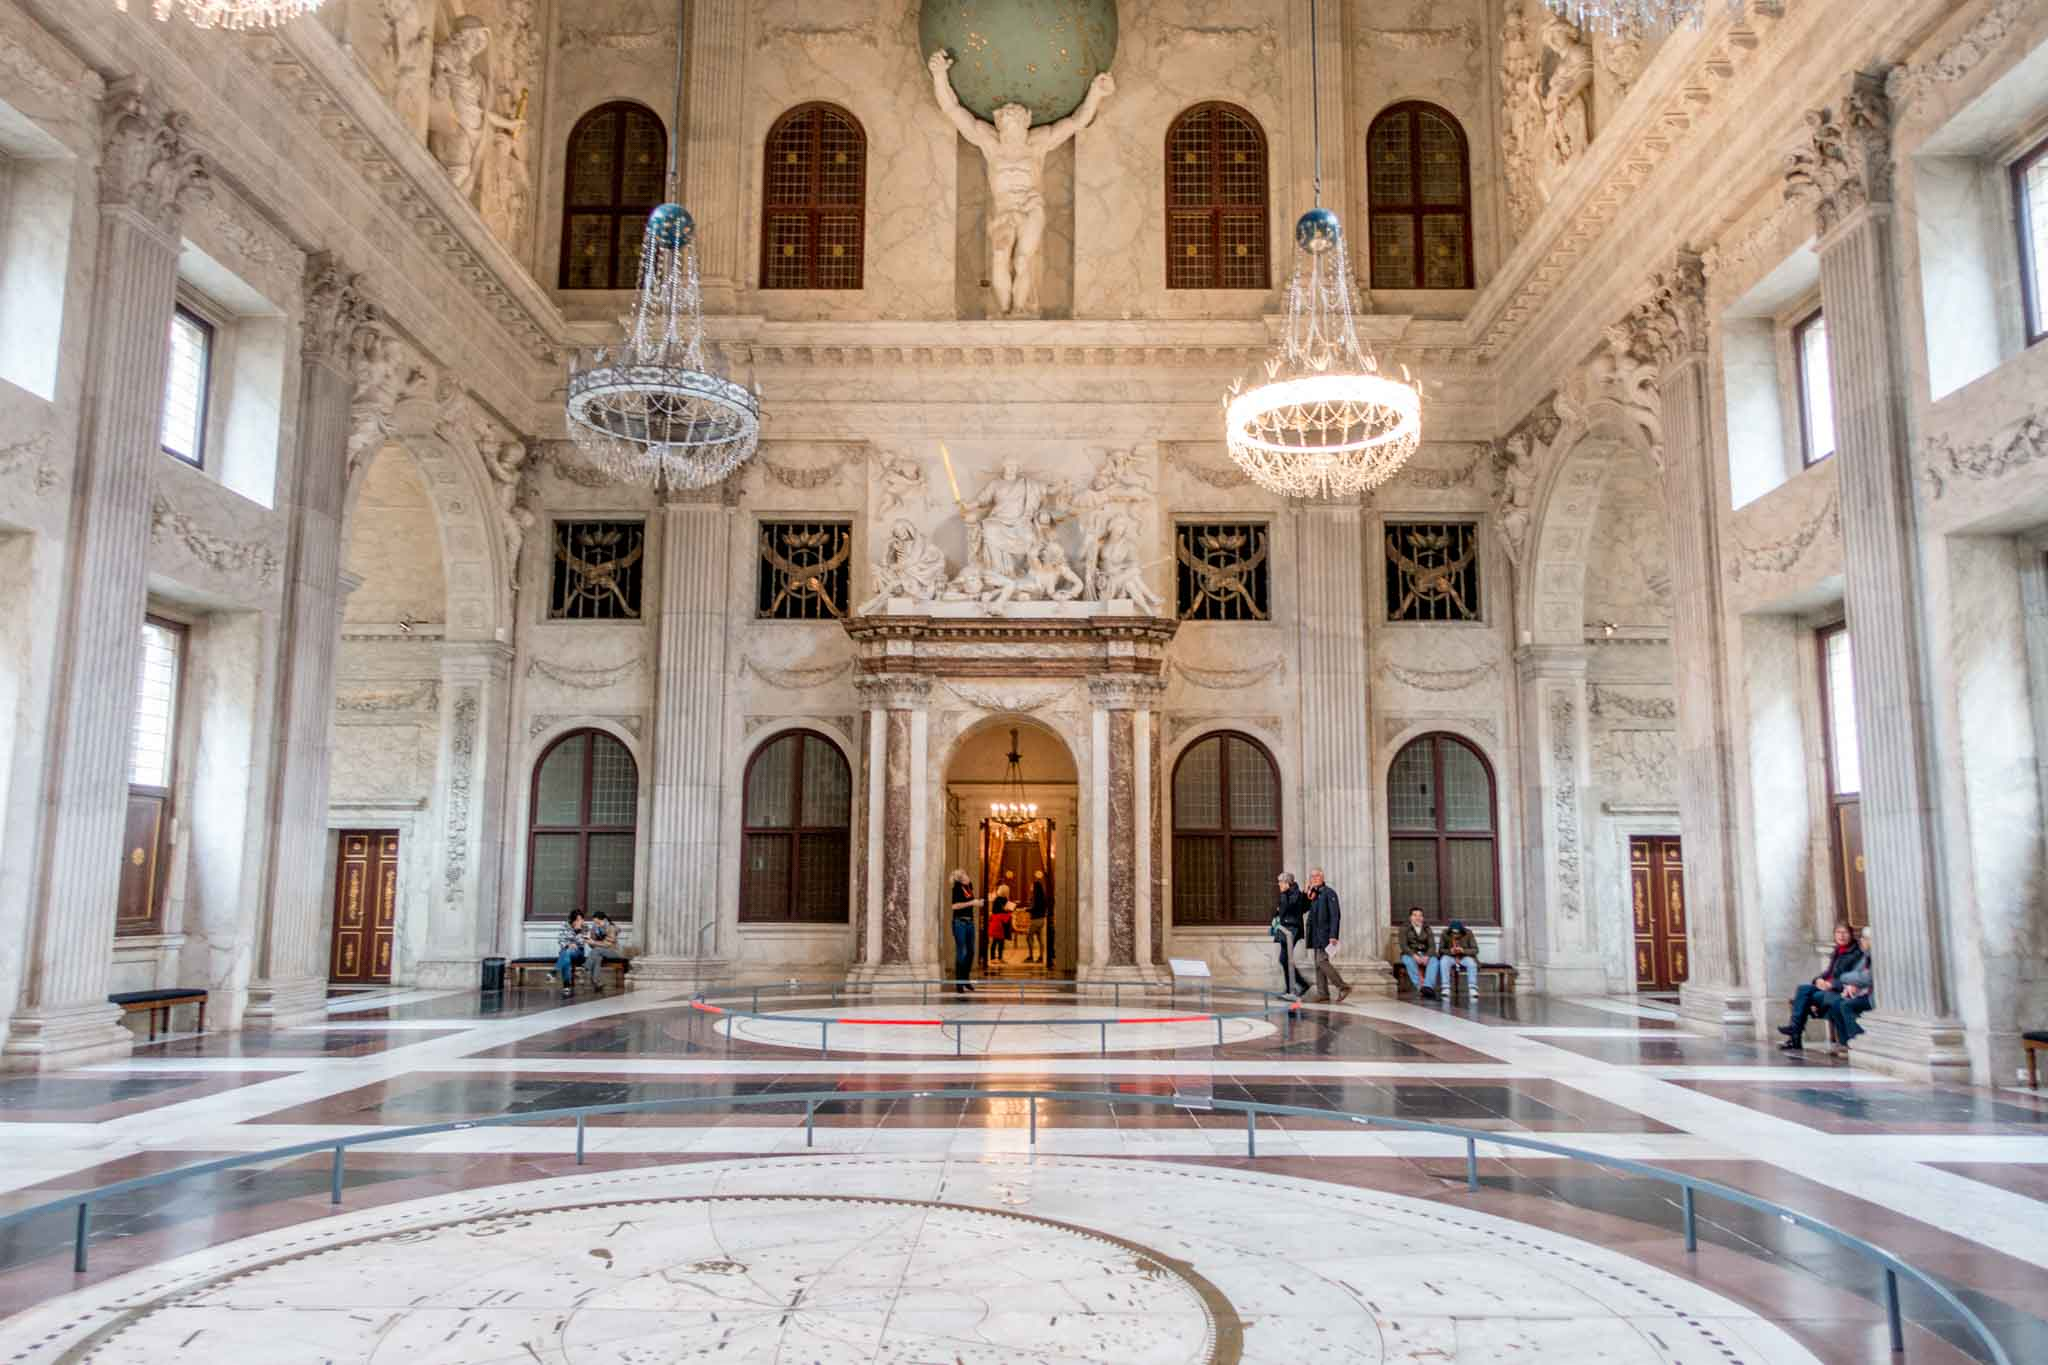 Central Hall in the Royal Palace, one of the Amsterdam main attractions